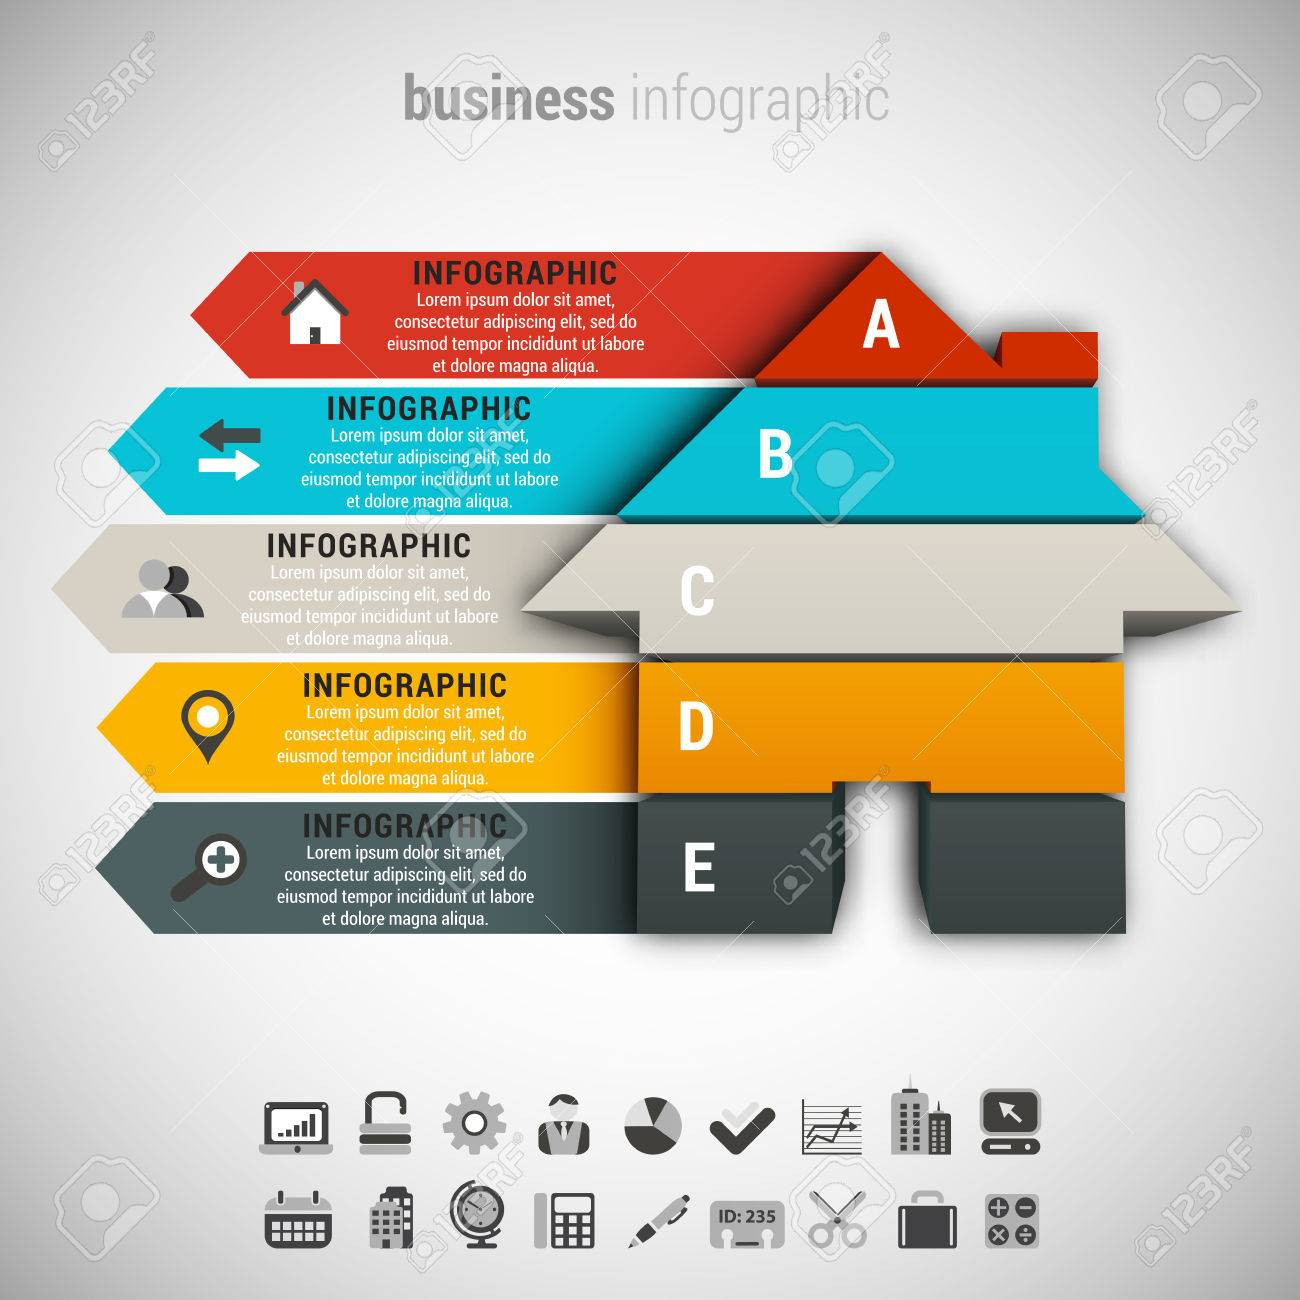 Vector illustration of business infographic made of house. - 48962174